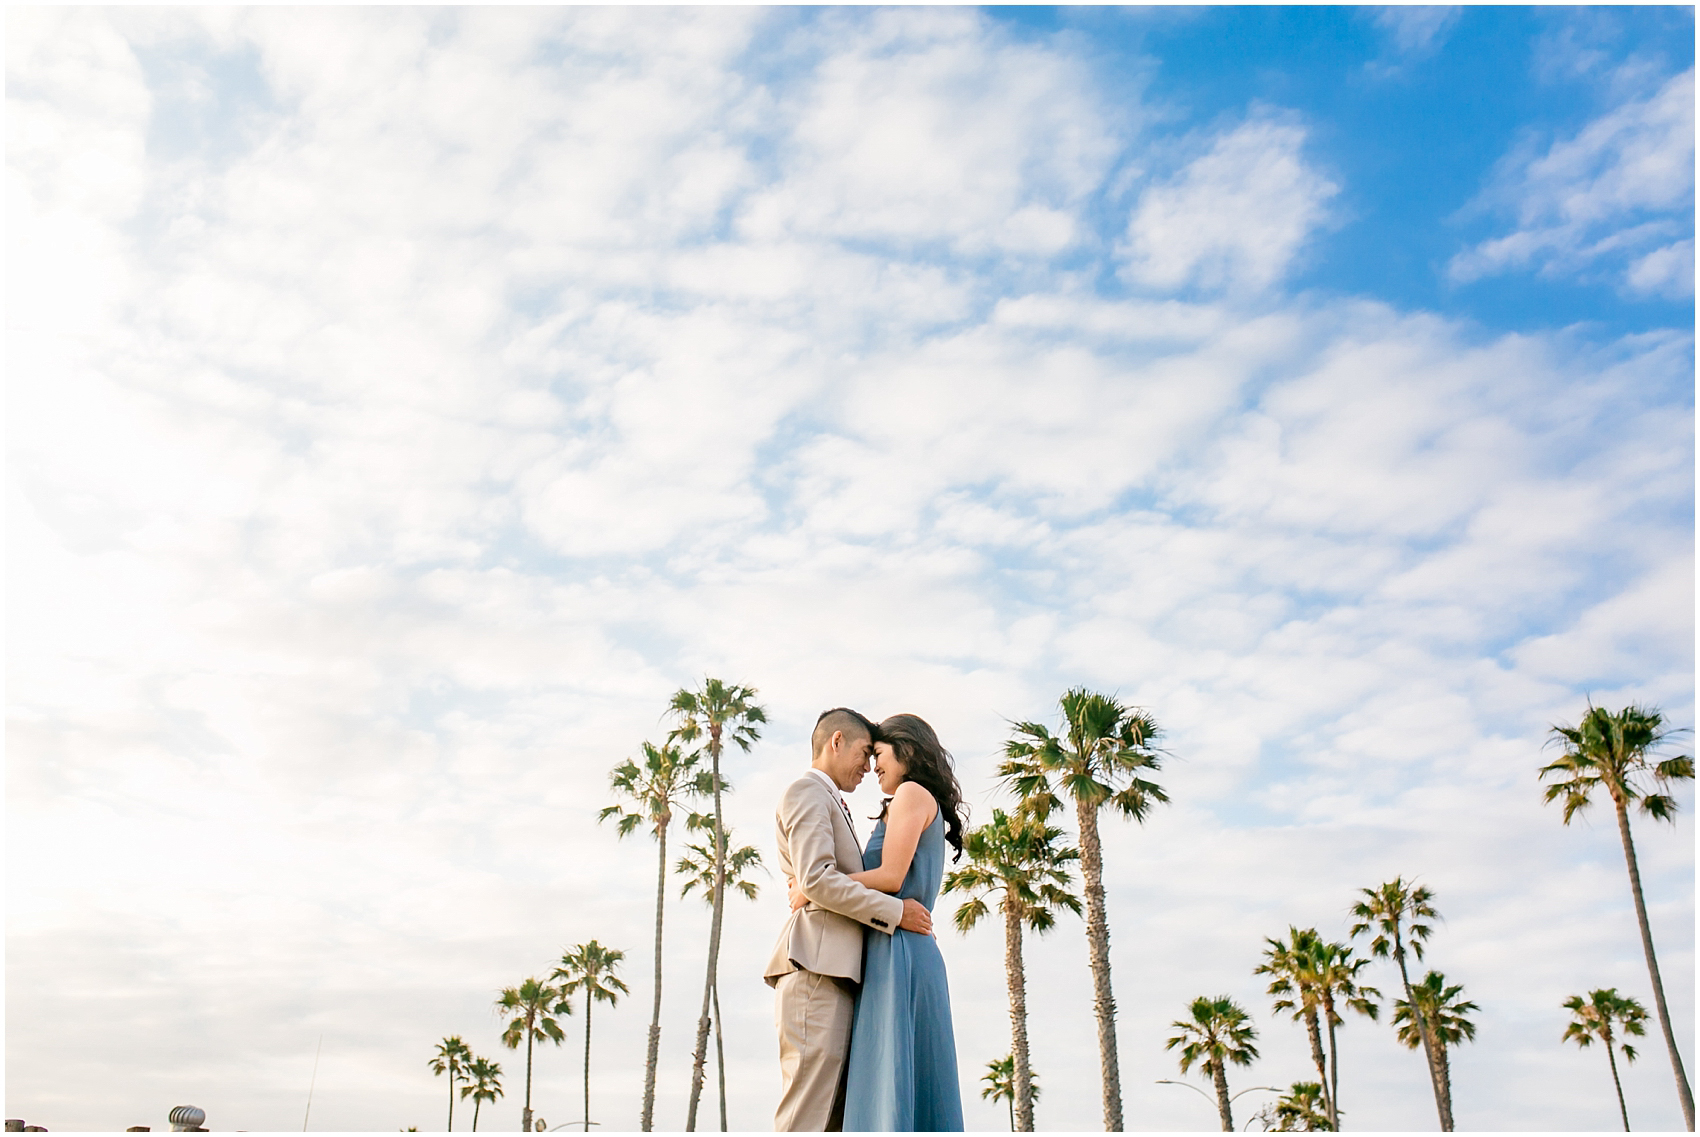 Newport Beach Engagement Photography Smetona Photo Bonnie Tim-0015.jpg